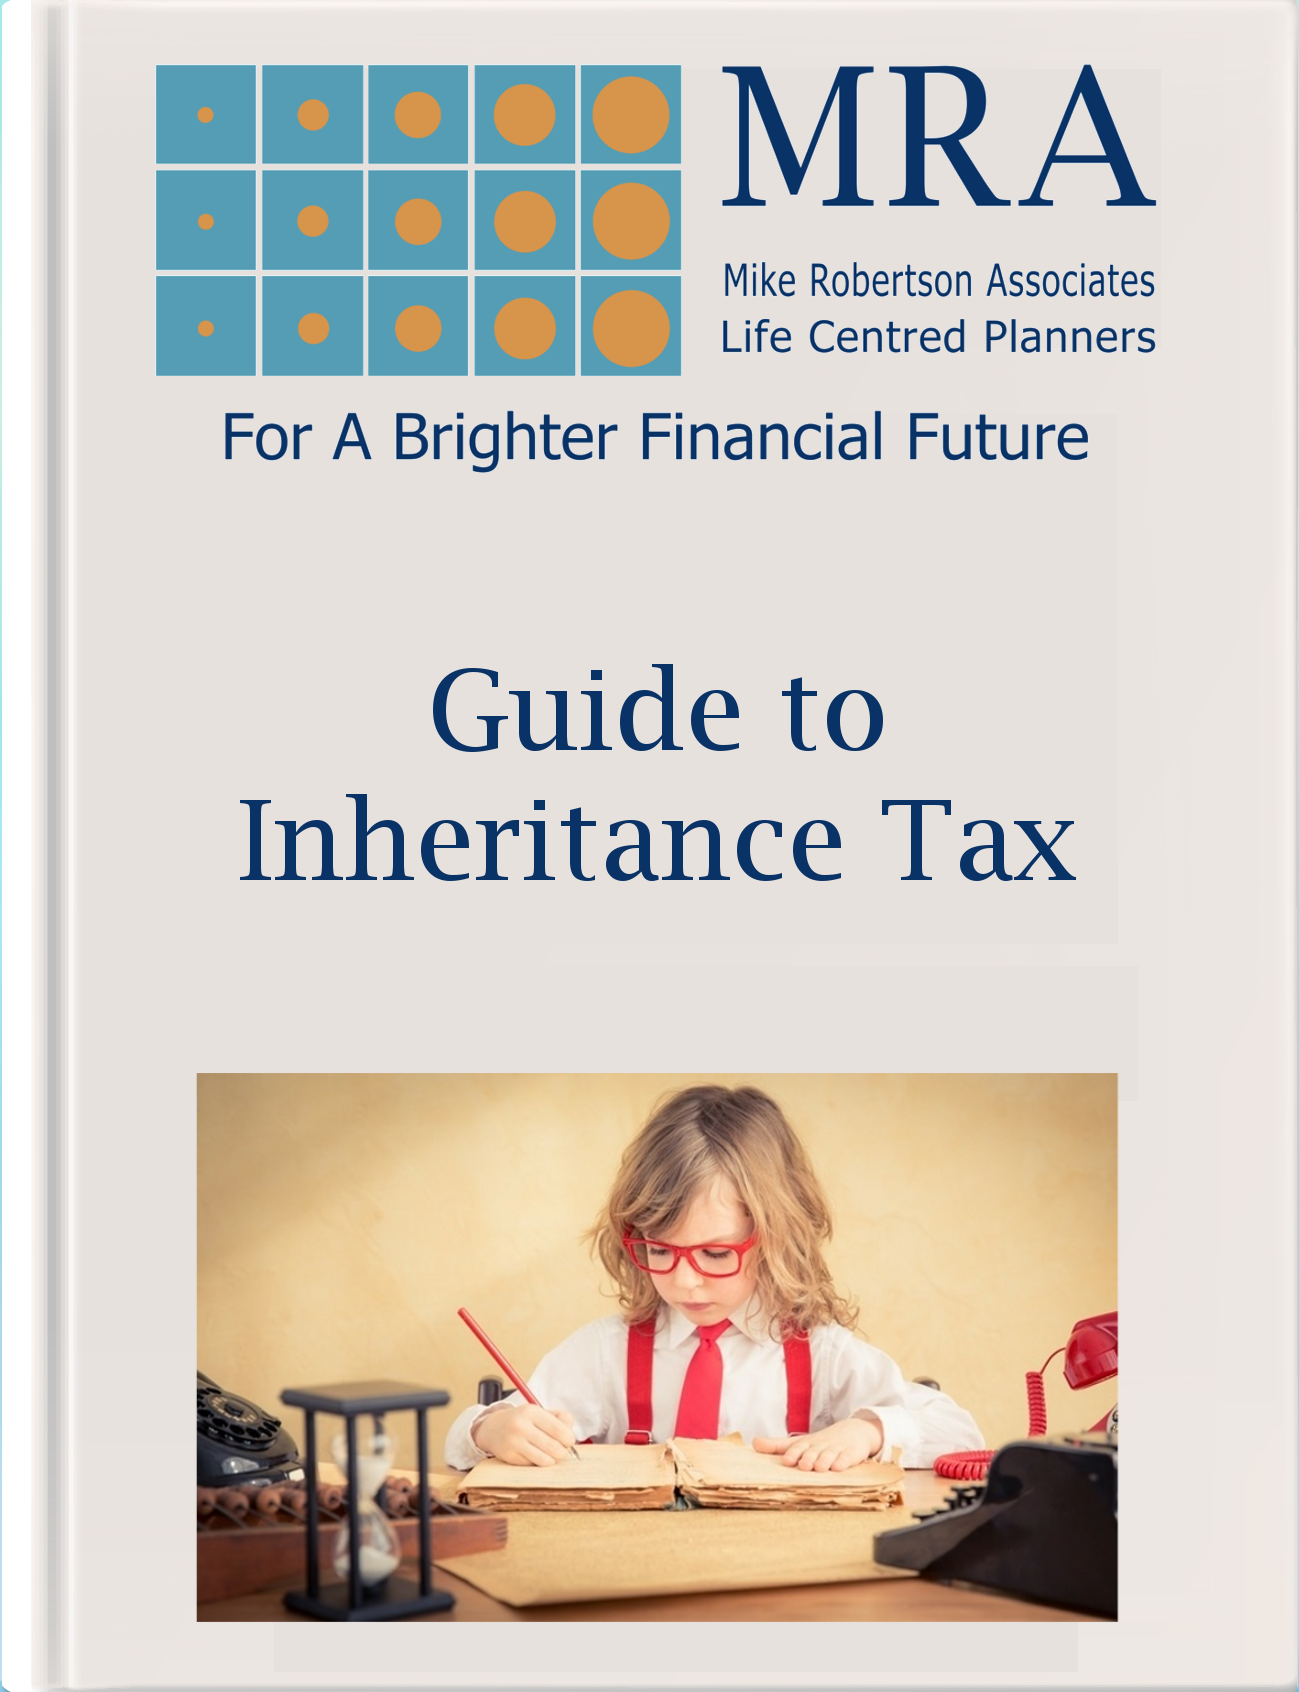 Download our Inheritance Tax Guide. Lifestyle Financial Planners, Lifestyle Financial Planning, Life Centred Financial Planning, Life Centred Financial Planners, Independent Financial Adviser, Independent Financial Advisor, IFA Local, Life Style Financial Consultant, Life Centred Financial Consultant, Personal Financial Planning, Financial Planning, Personal Financial Planning, Personal Finances, Financial Consultant, Pensions, Pensions Planner, Retirement Planning, Retirement Planner, Tax Planning, Tax Planning Consultant, Tax Planning Adviser, Tax Consultant, Tax Planning Advisor, Cash Flow Budgeting, Banking, Insurance, Term Assurance, Mortgage Consultant, Mortgage Adviser, Mortgage Advisor, Mortgages, Savings, Pesonal Savings, Investments, Estate Planning, Estate Planner, Later Life Planning, Wealth Management, Business Adviser, Business Consultant, Forecasting, Investments, Portfolio Planning, Financial Guidance, Financial Security, Family Protection, Critical Illness, Critical Illness Planning, Critical Illness Protection, Tax Efficient Savings, Tax Planning, Tax Efficient Investments, Saving For Long Term Goals, Savings For Long Term Care, Life Centred Financial Advice, Life Centred Adviser, Life Centred Advisor, Life Centered Planning, Life Centered Adviser, Cash Flow Forecasting, Residence Nil Rate Band, Land Registry, Tracing Land Registry Form, Financial Planning, Financial Planners, Work To Live Financial Planning, What is Inflation, How to beat Inflation, Selling a property in a limited company, SSAS Pensions, SSAS Pension, What is a SSAS, What is a SIPP, SIPP Planning, SSAS Planner, SIPP Planner, SSAS Planning, Stakeholder Pansions, Financial Freedom Reviews, When Can I Draw My State Pension, Saving Money, Ways To Save Money, Ways To Save money on a Tight Budget, Land Registry, What is An Annuity, Annuities, Lower My Bills, Nil Rate Band, Inheritance Tax Advice, Essential Corporate Solutions, Inheritance Tax Residence Nil Rate Band, Debt Relief Order, 